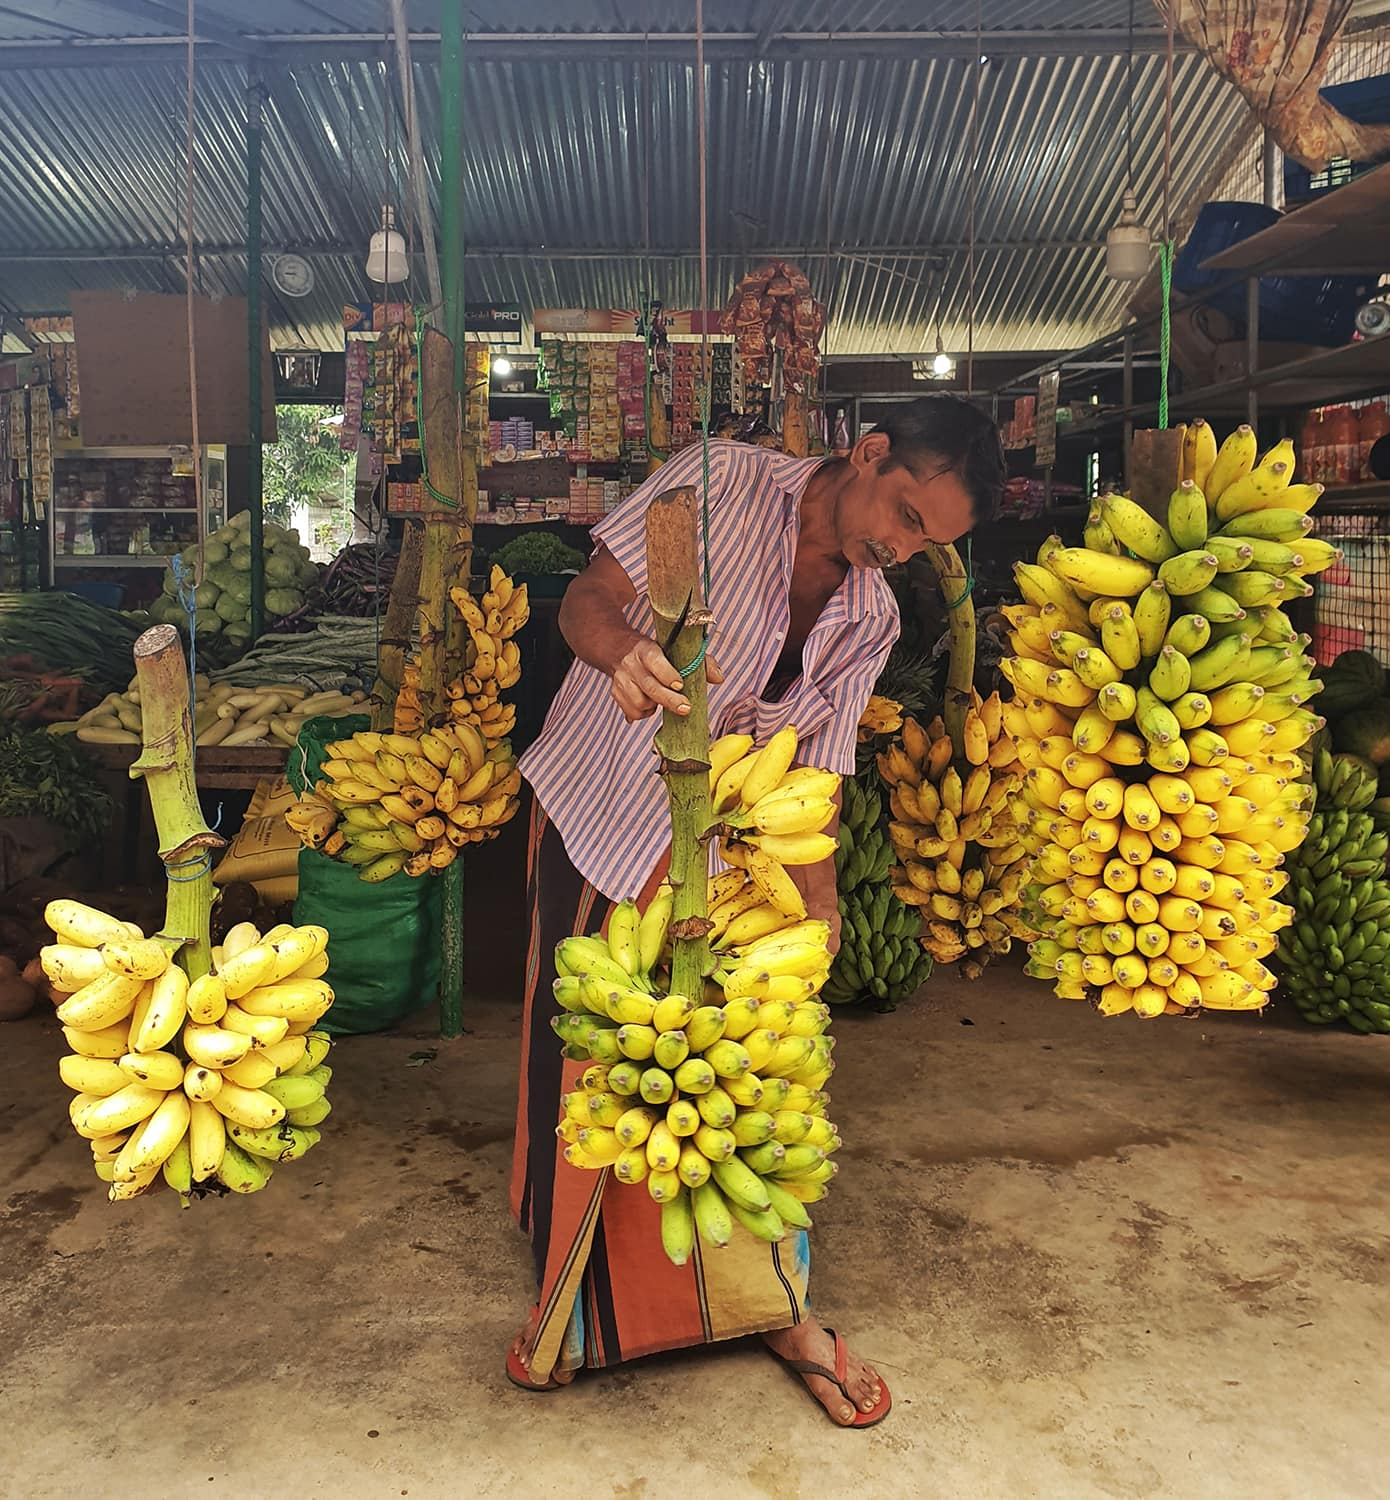 Banana season in Sri Lanka